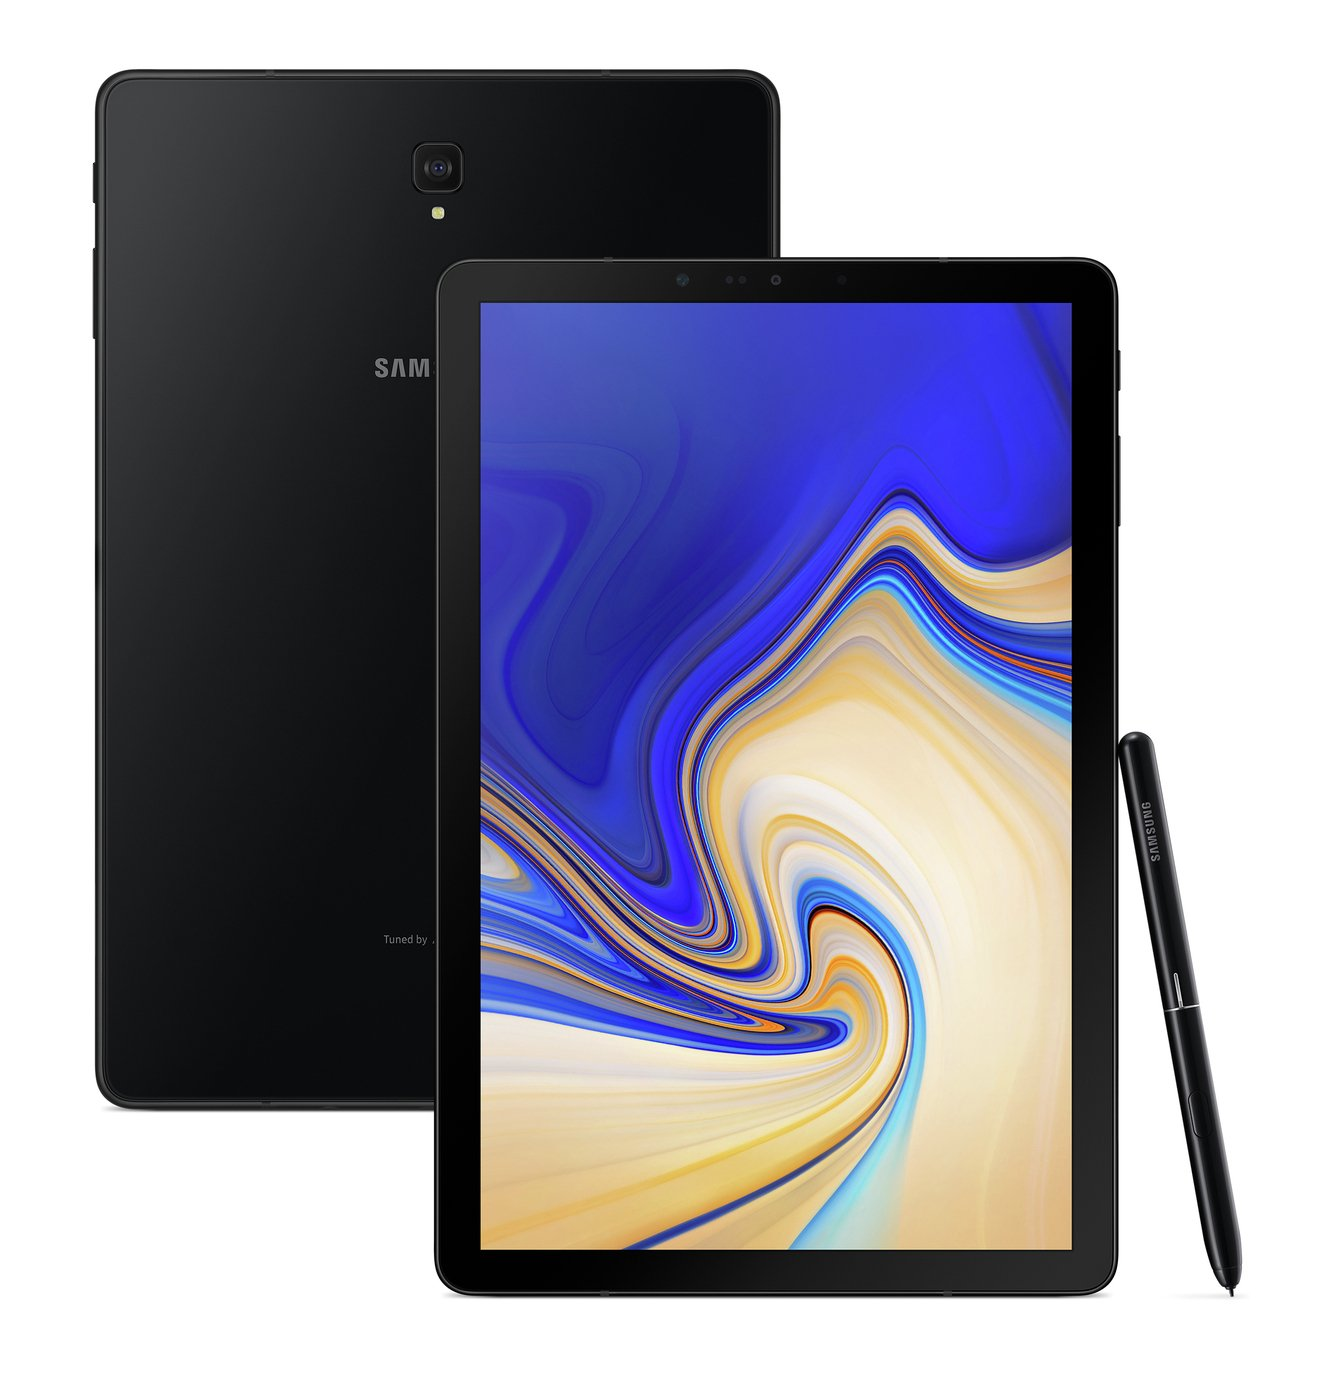 Samsung Tab S4 10.5 Inch 4G LTE Tablet - Black